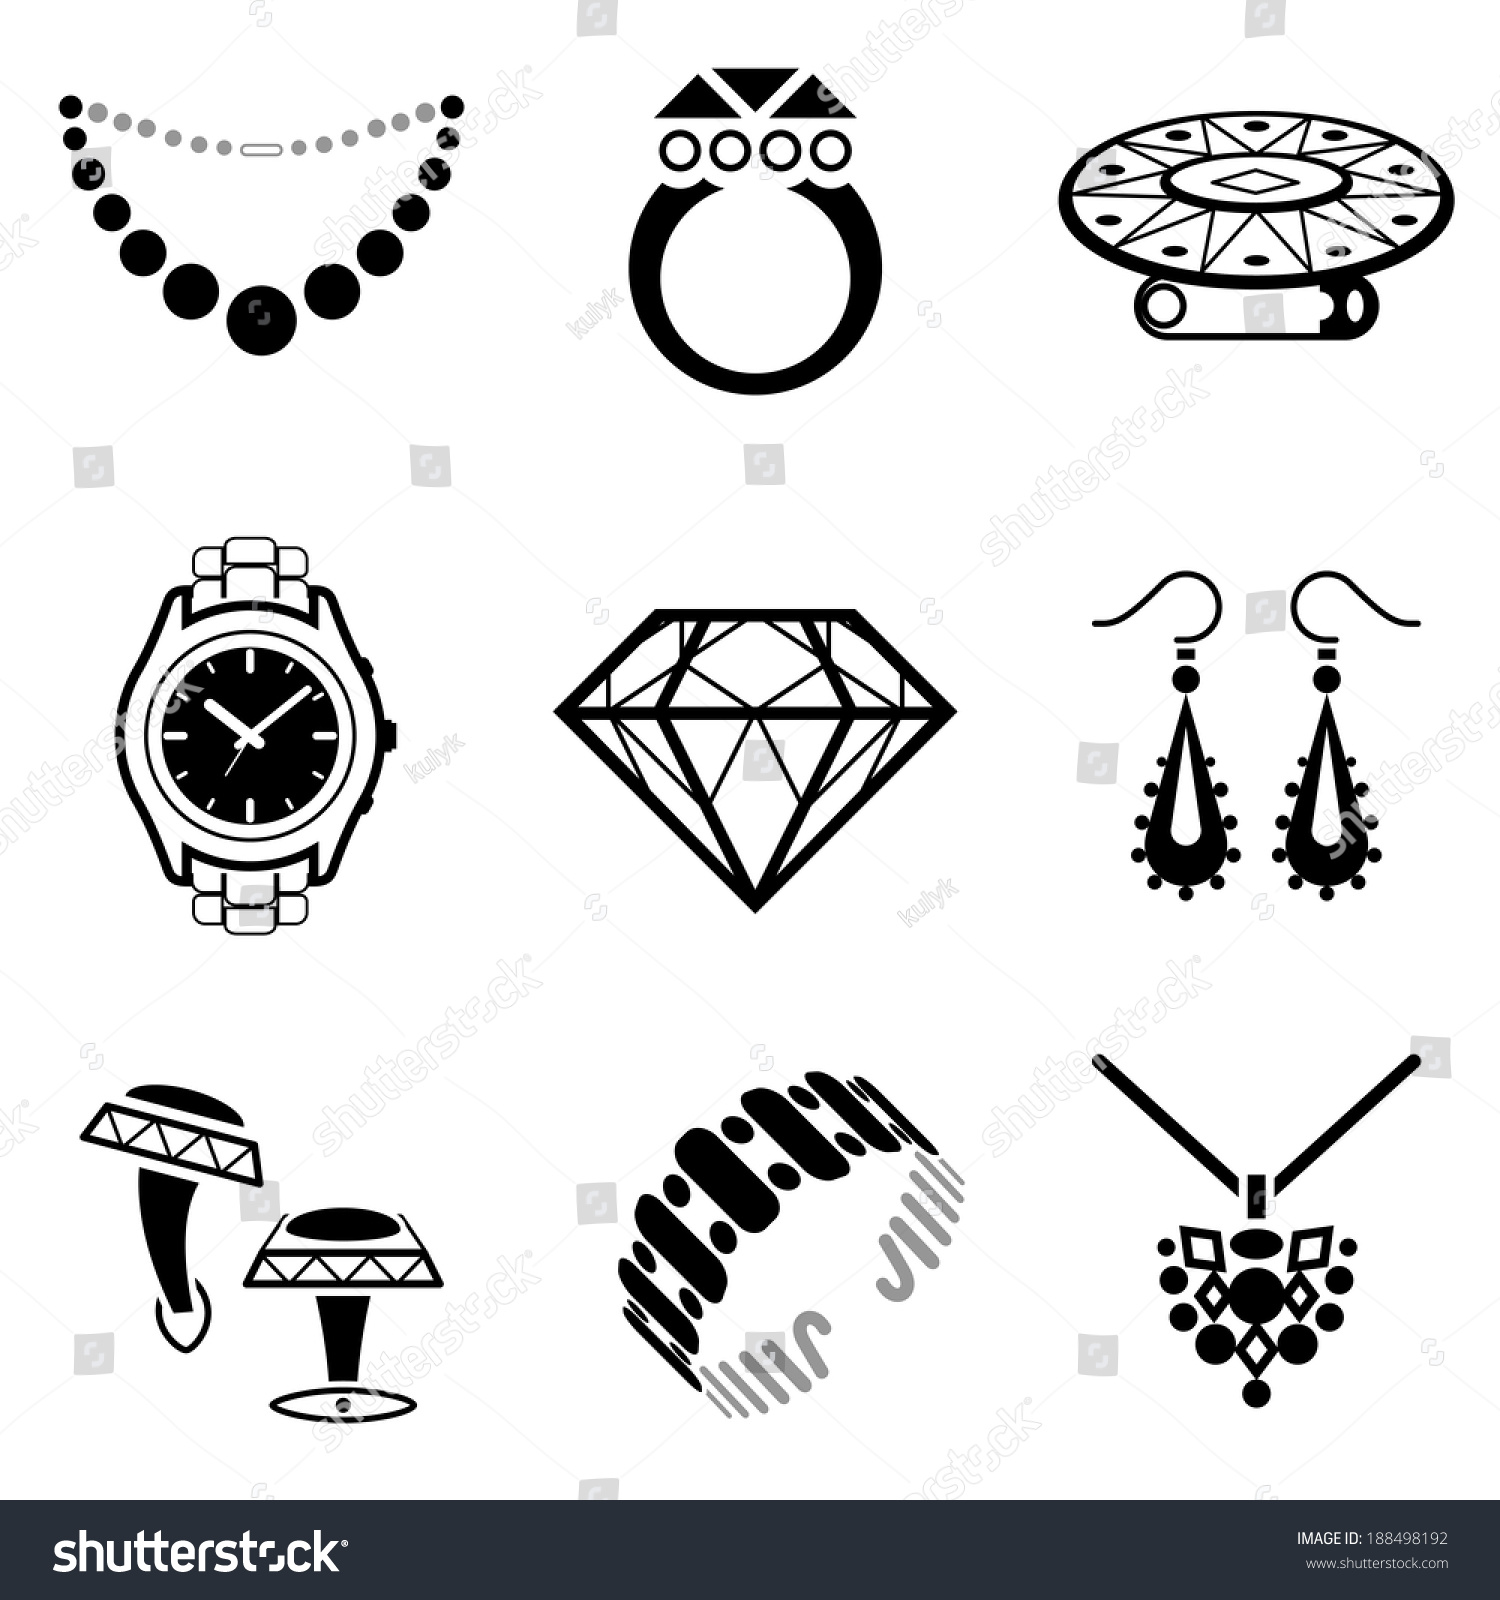 Set Jewelry Icons Collection Blackwhite Icons Stock Illustration